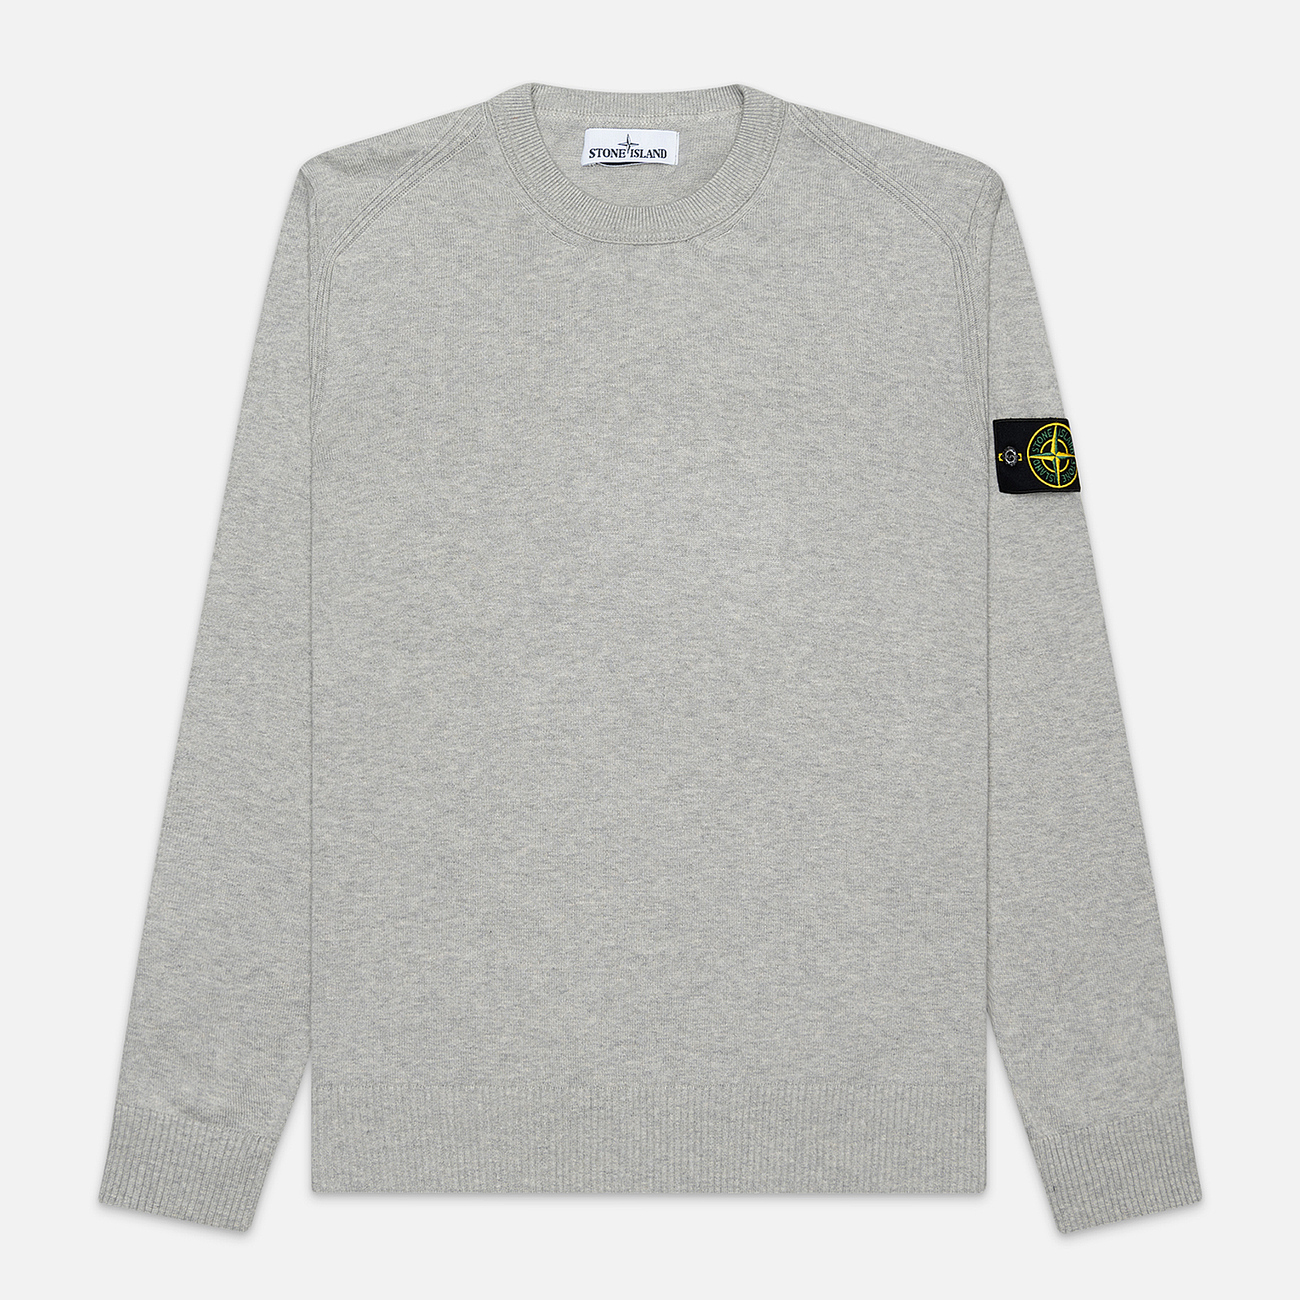 Мужской свитер Stone Island Crew Neck Smooth Cotton Dust Grey Melange